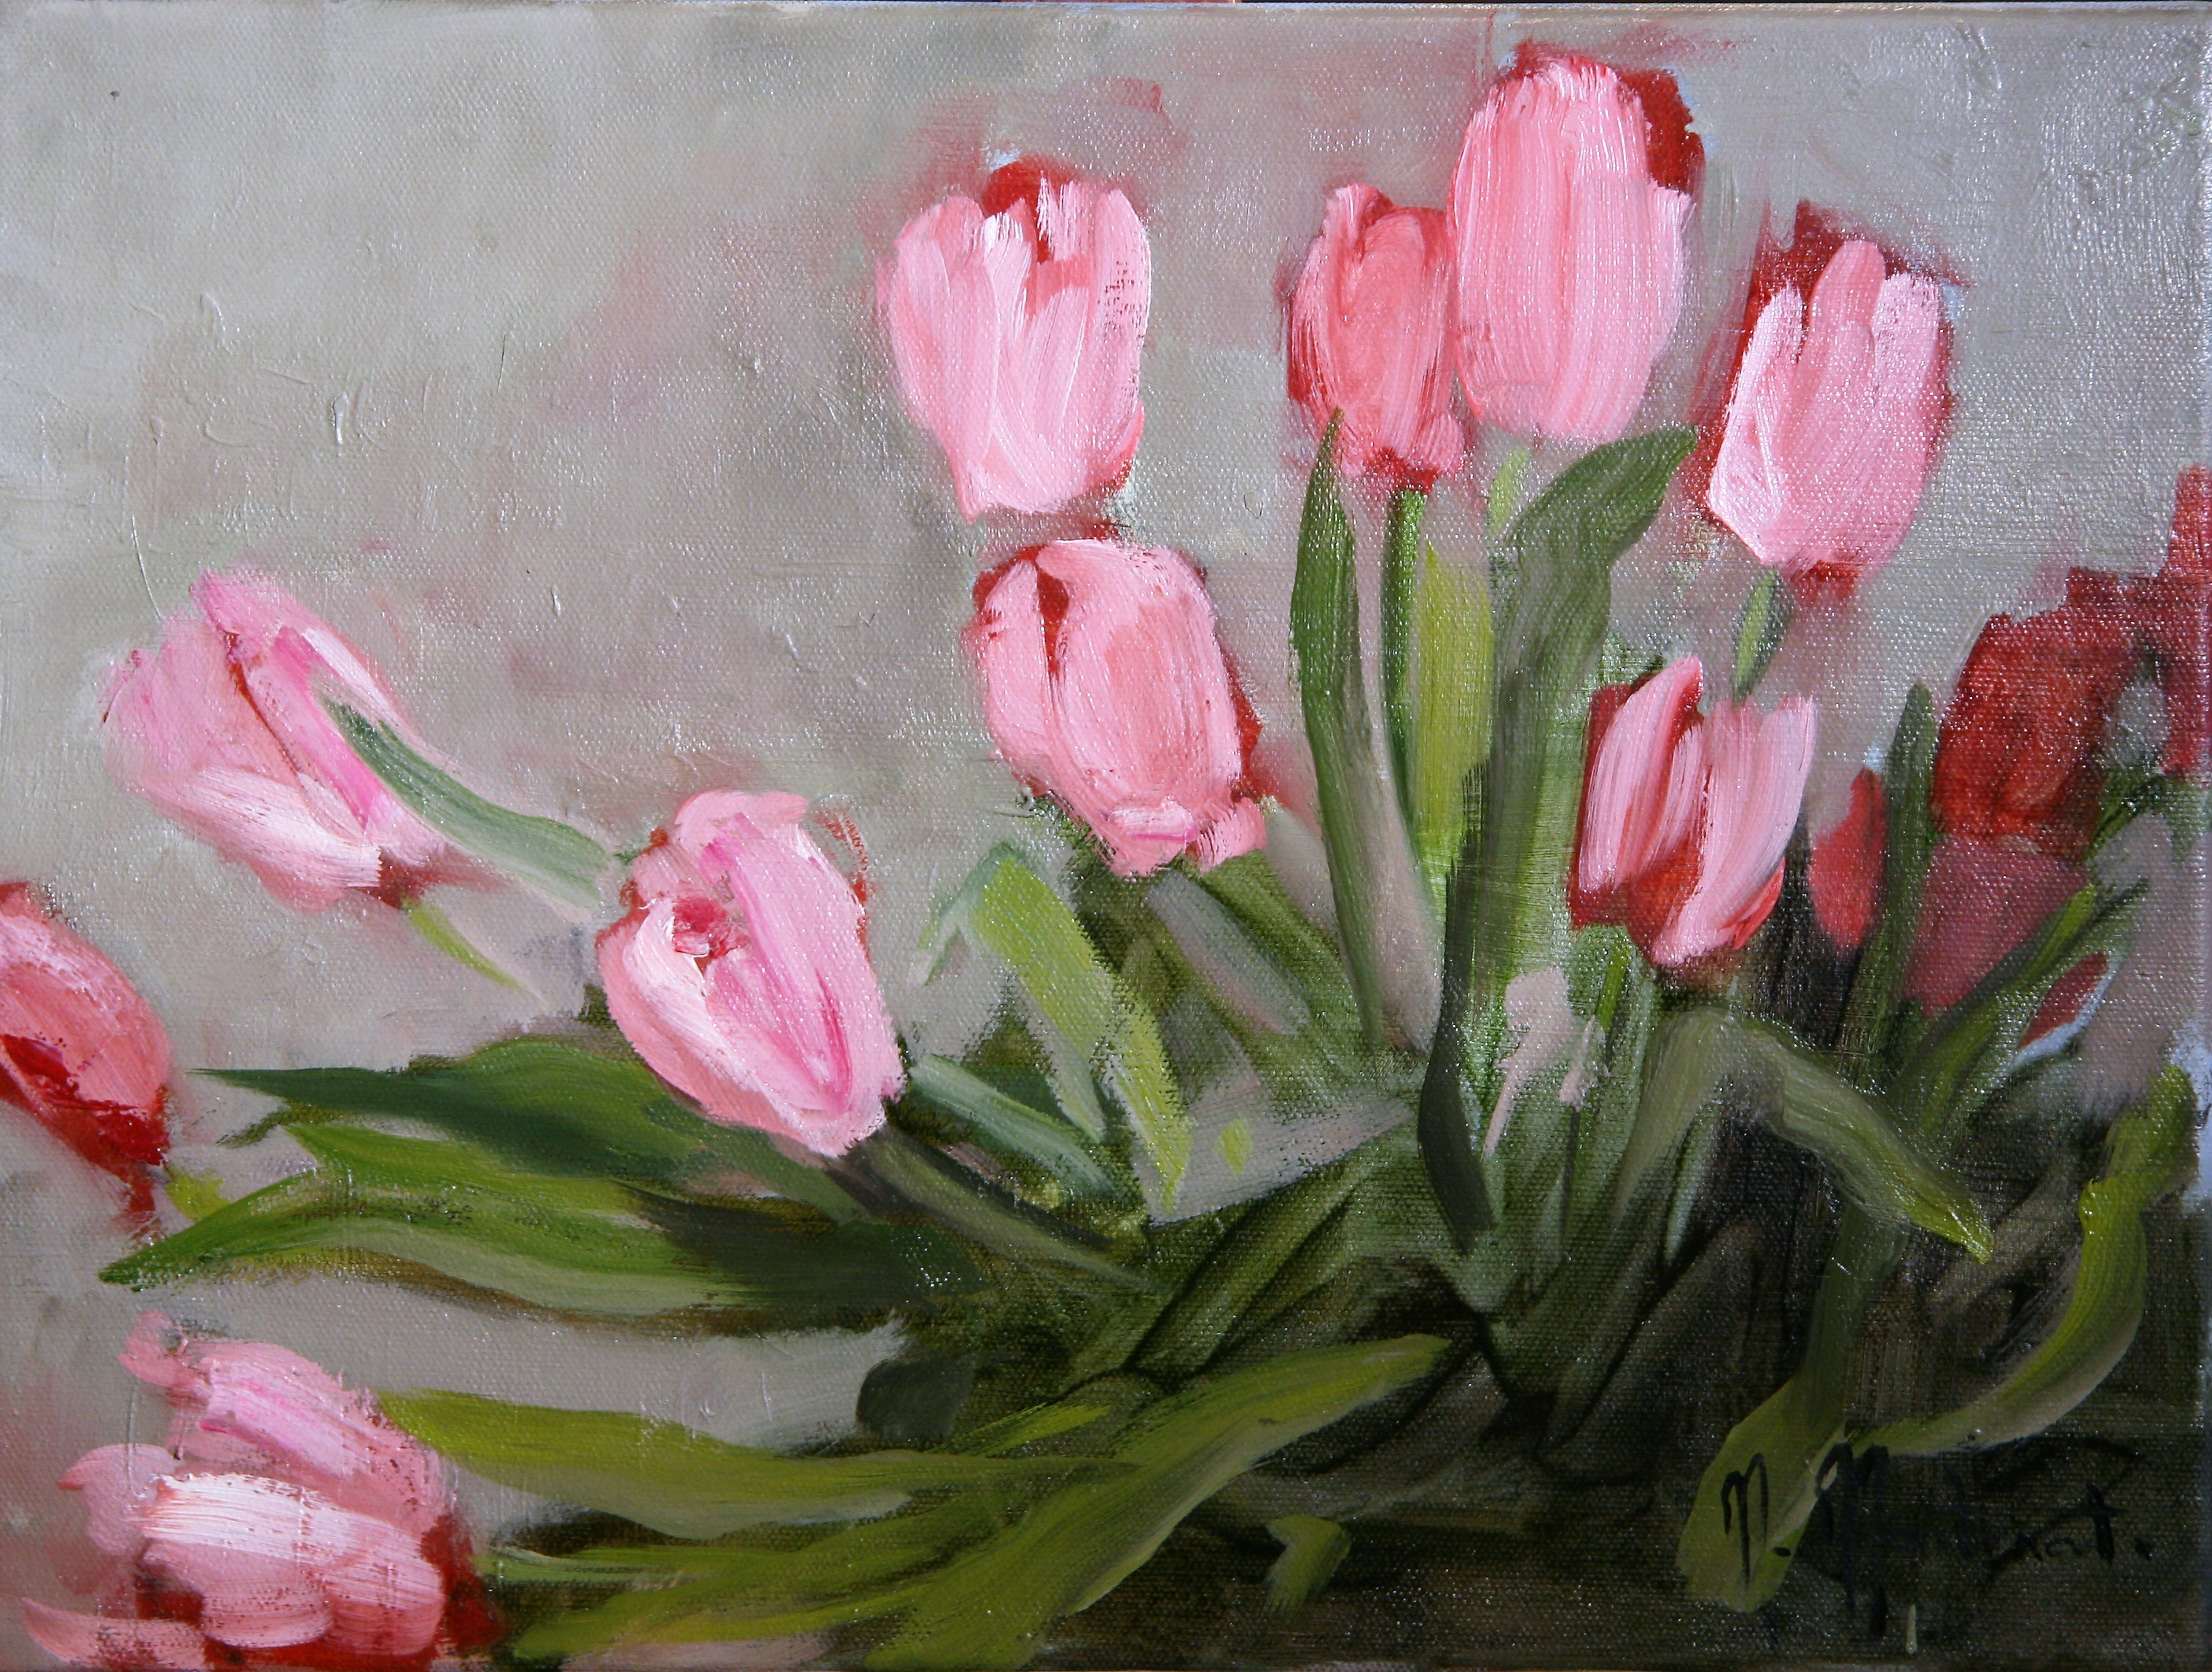 Les tulipes rouges, 30x40cm